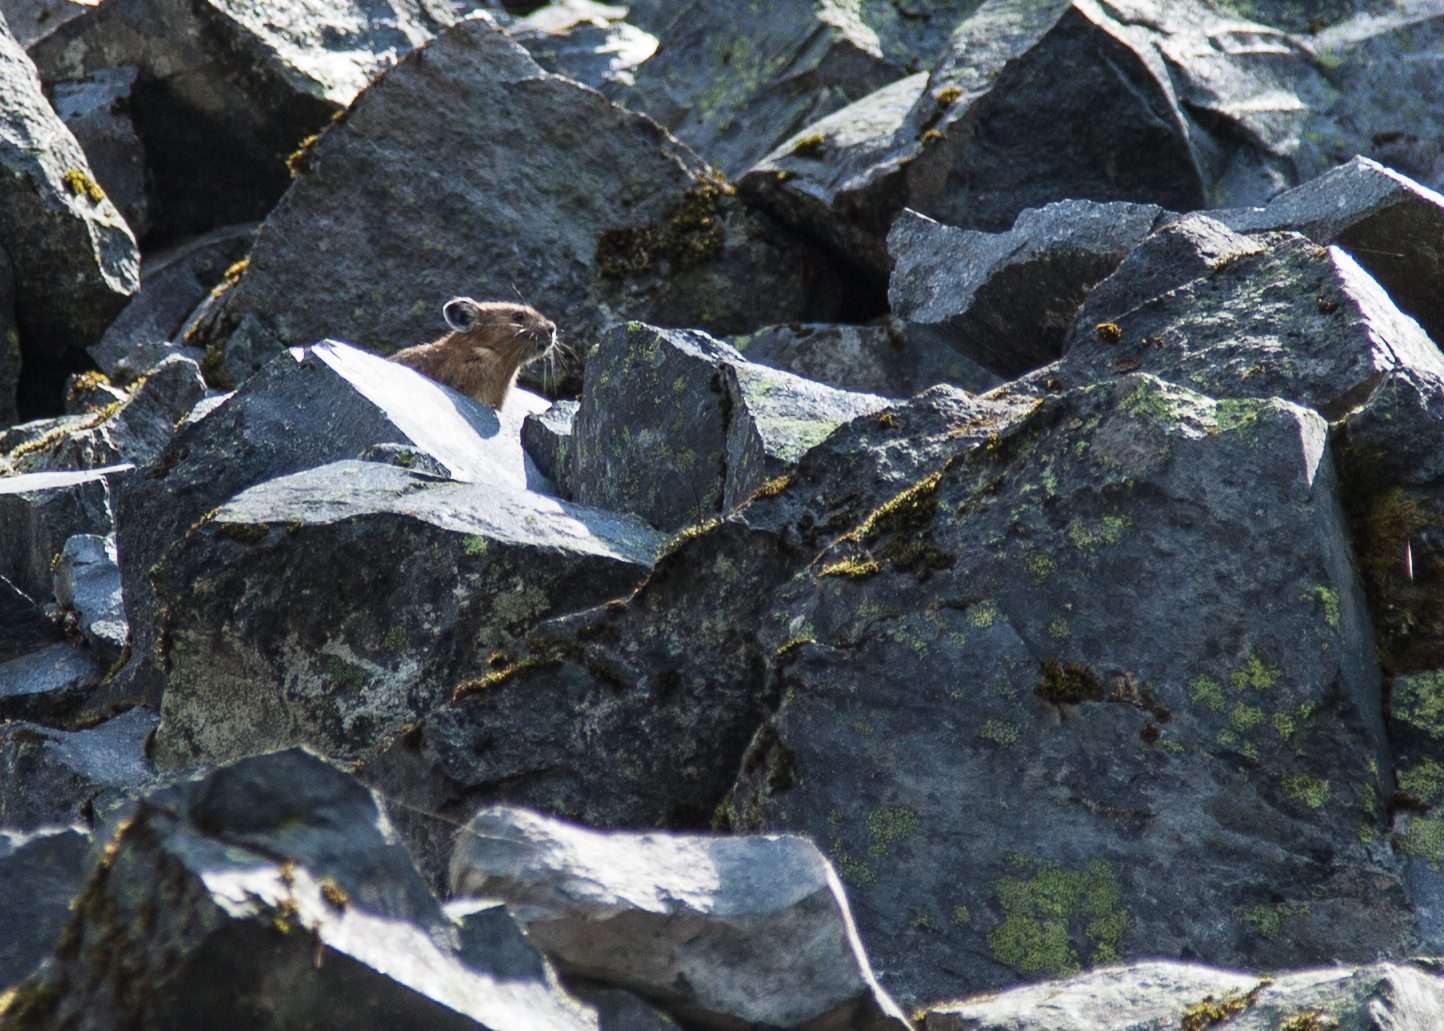 Our one good view of a pika on our hikes. Cute little guys.